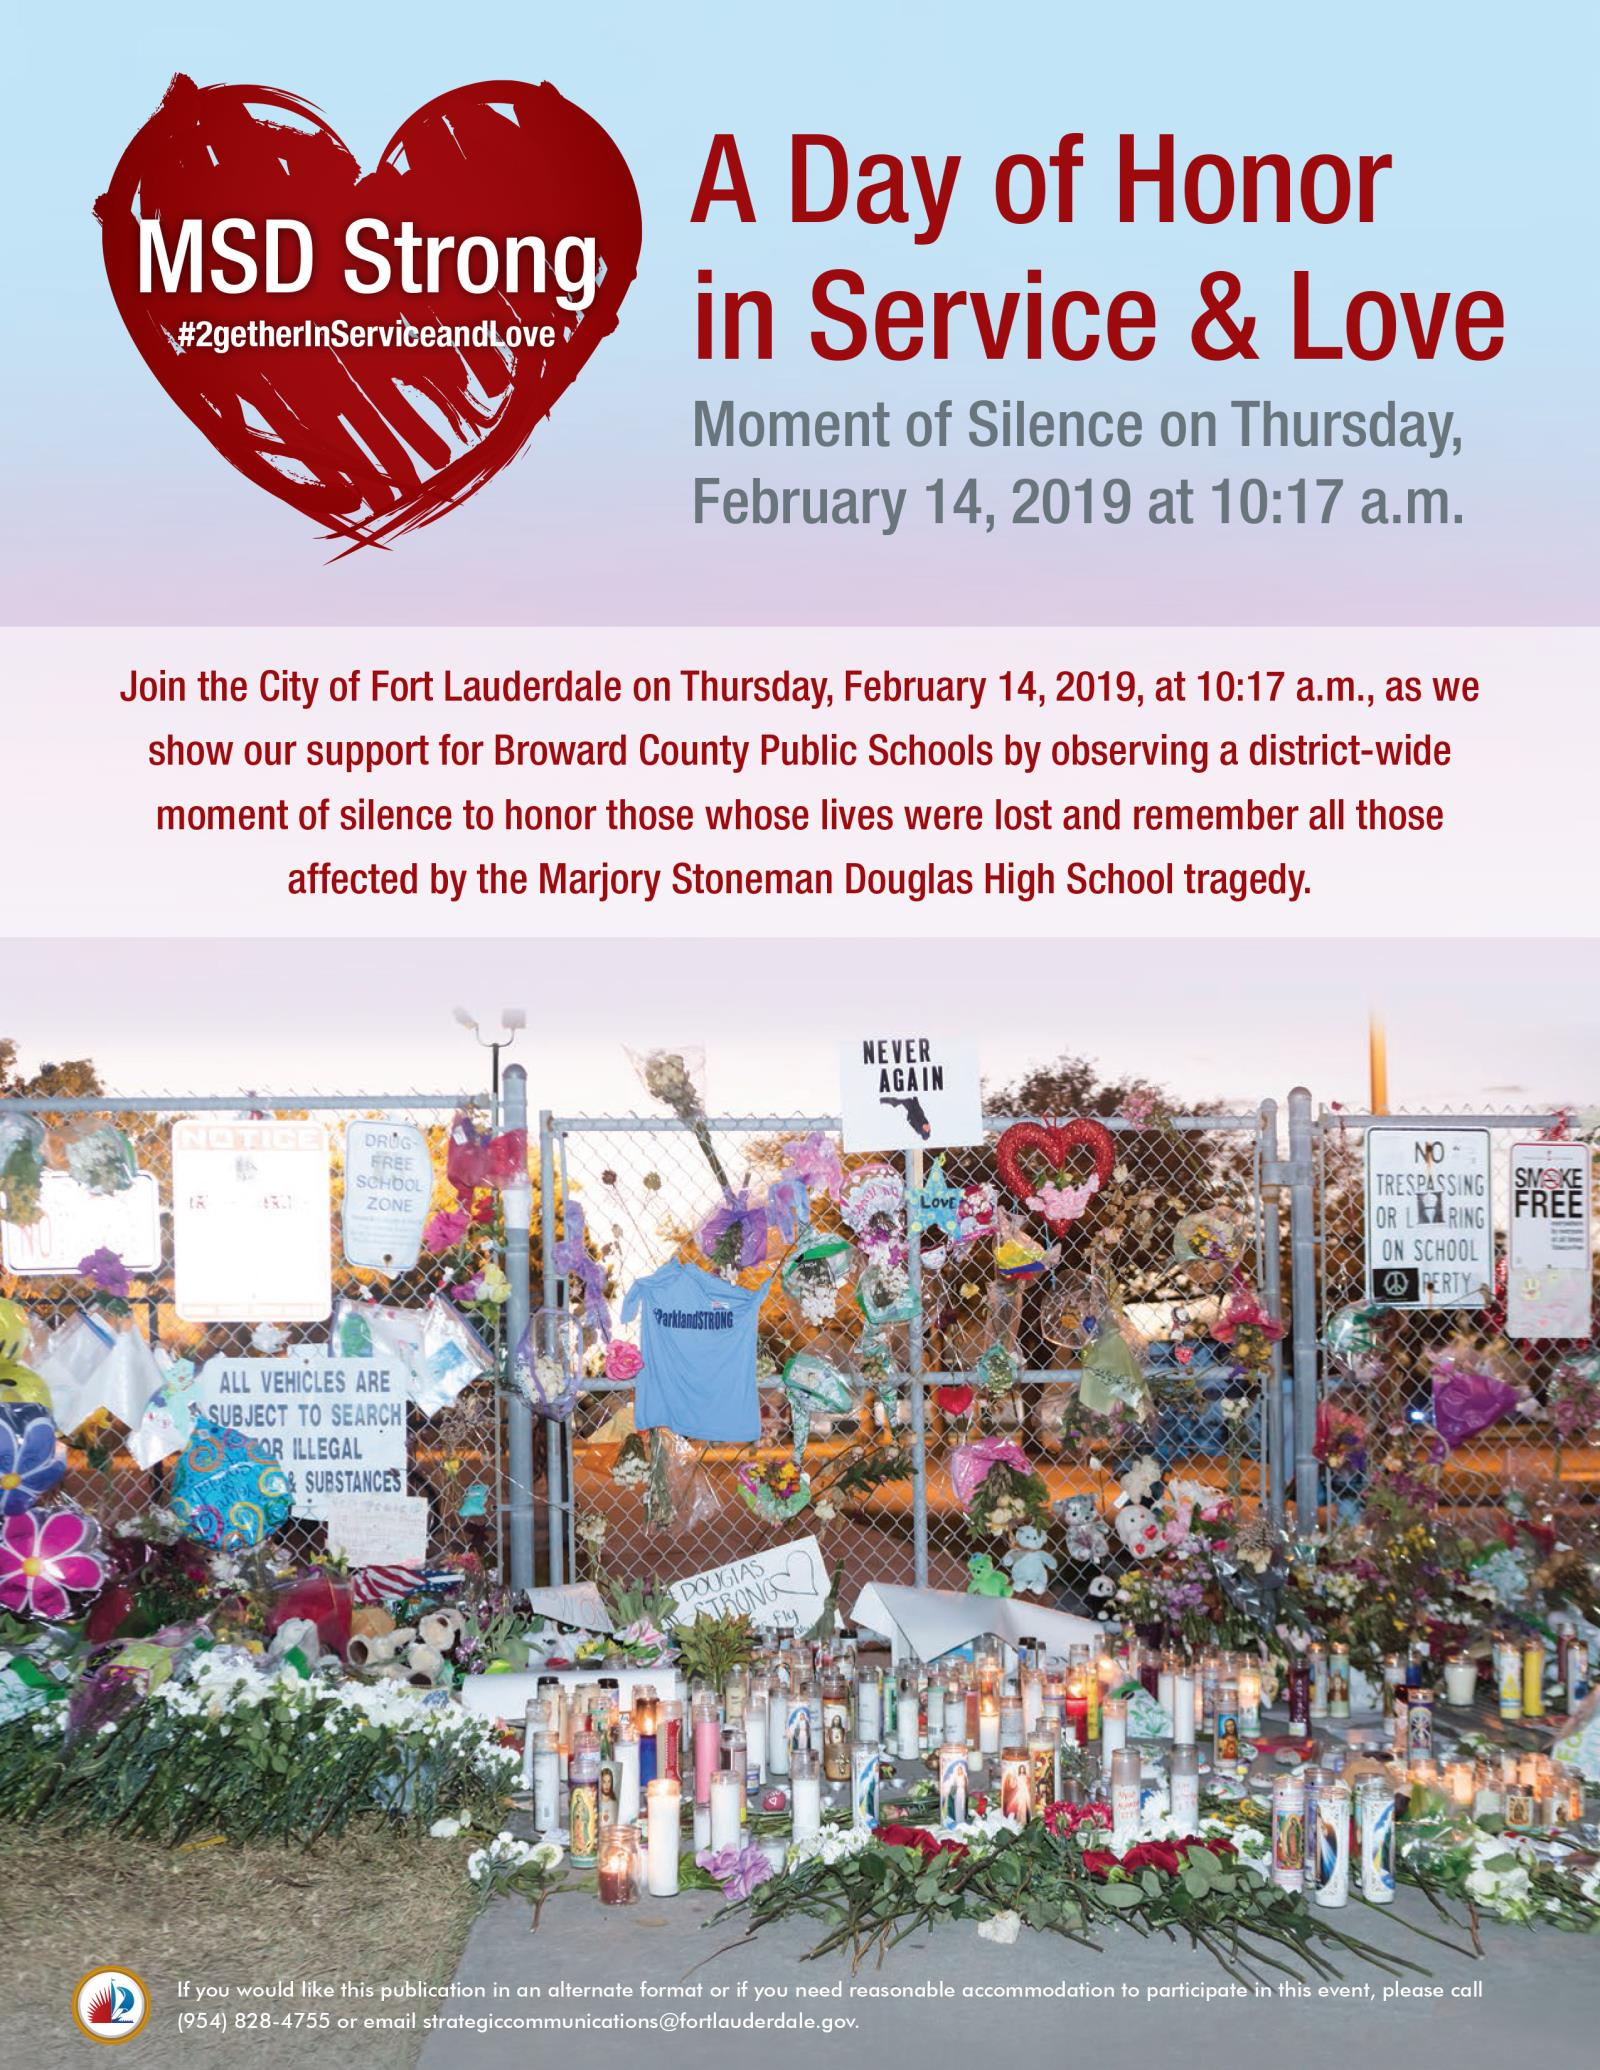 Fort Lauderdale Calendar February 2019 City of Fort Lauderdale, FL : Event Calendar : Moment of Silence